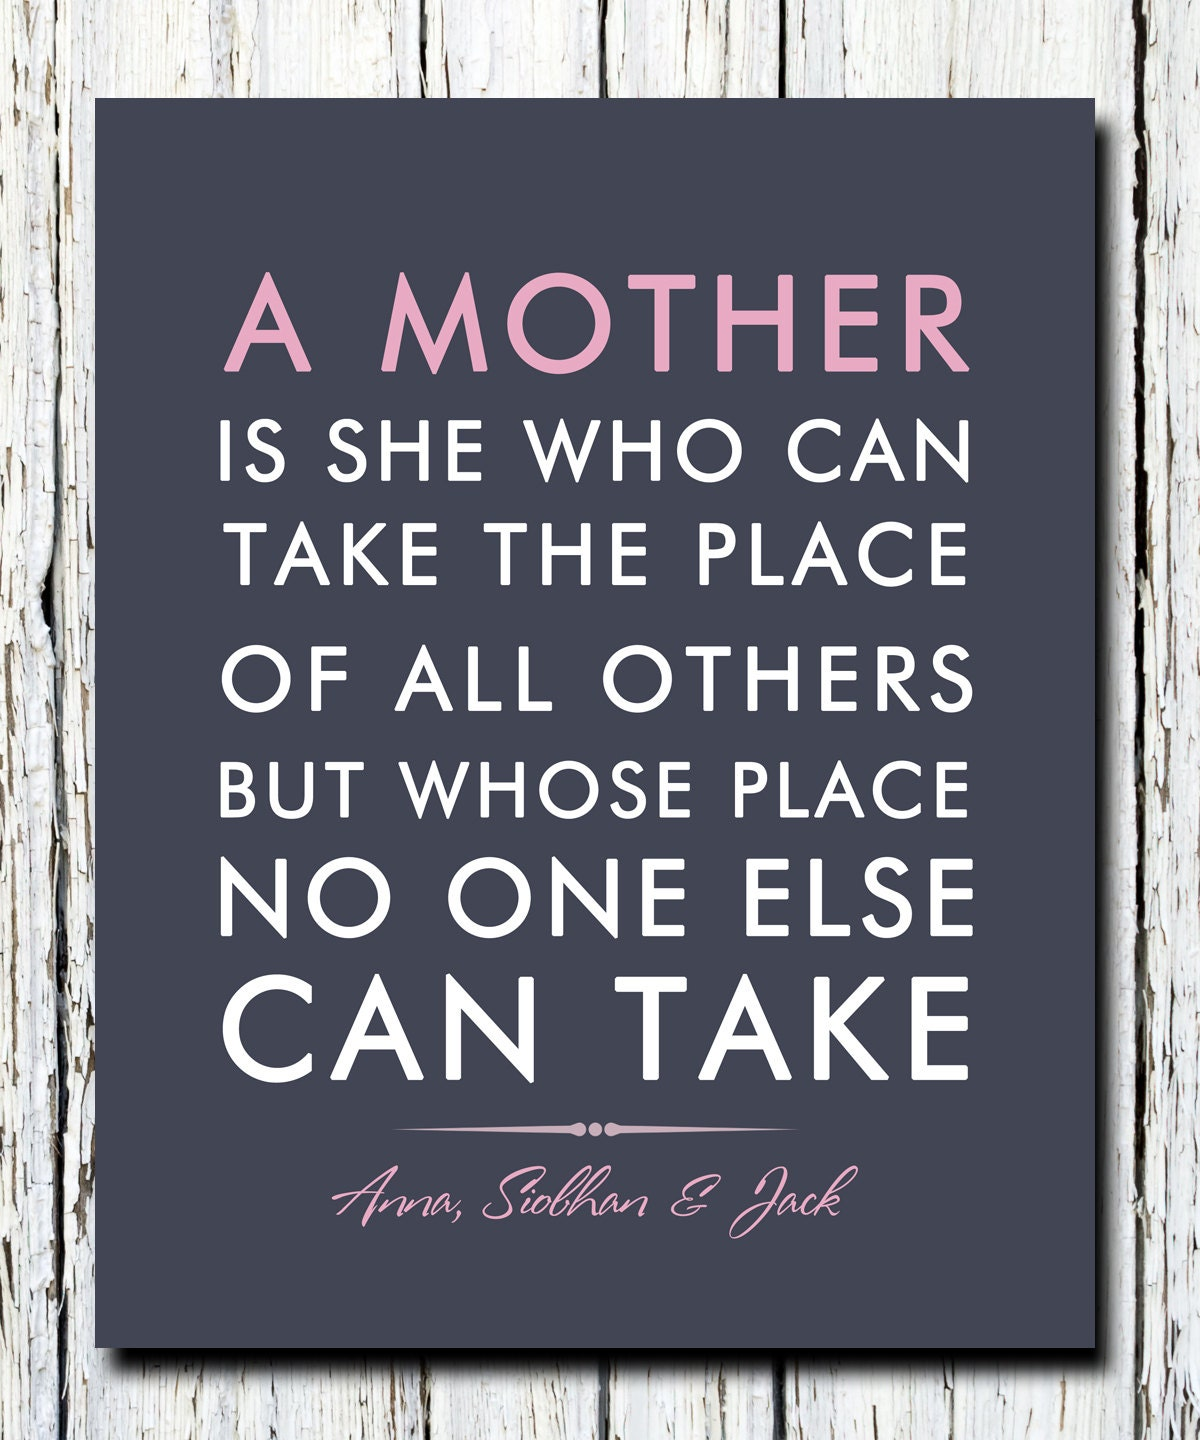 Best Birthday Quotes For Mom: Birthday Quotes For Mom Who Died. QuotesGram